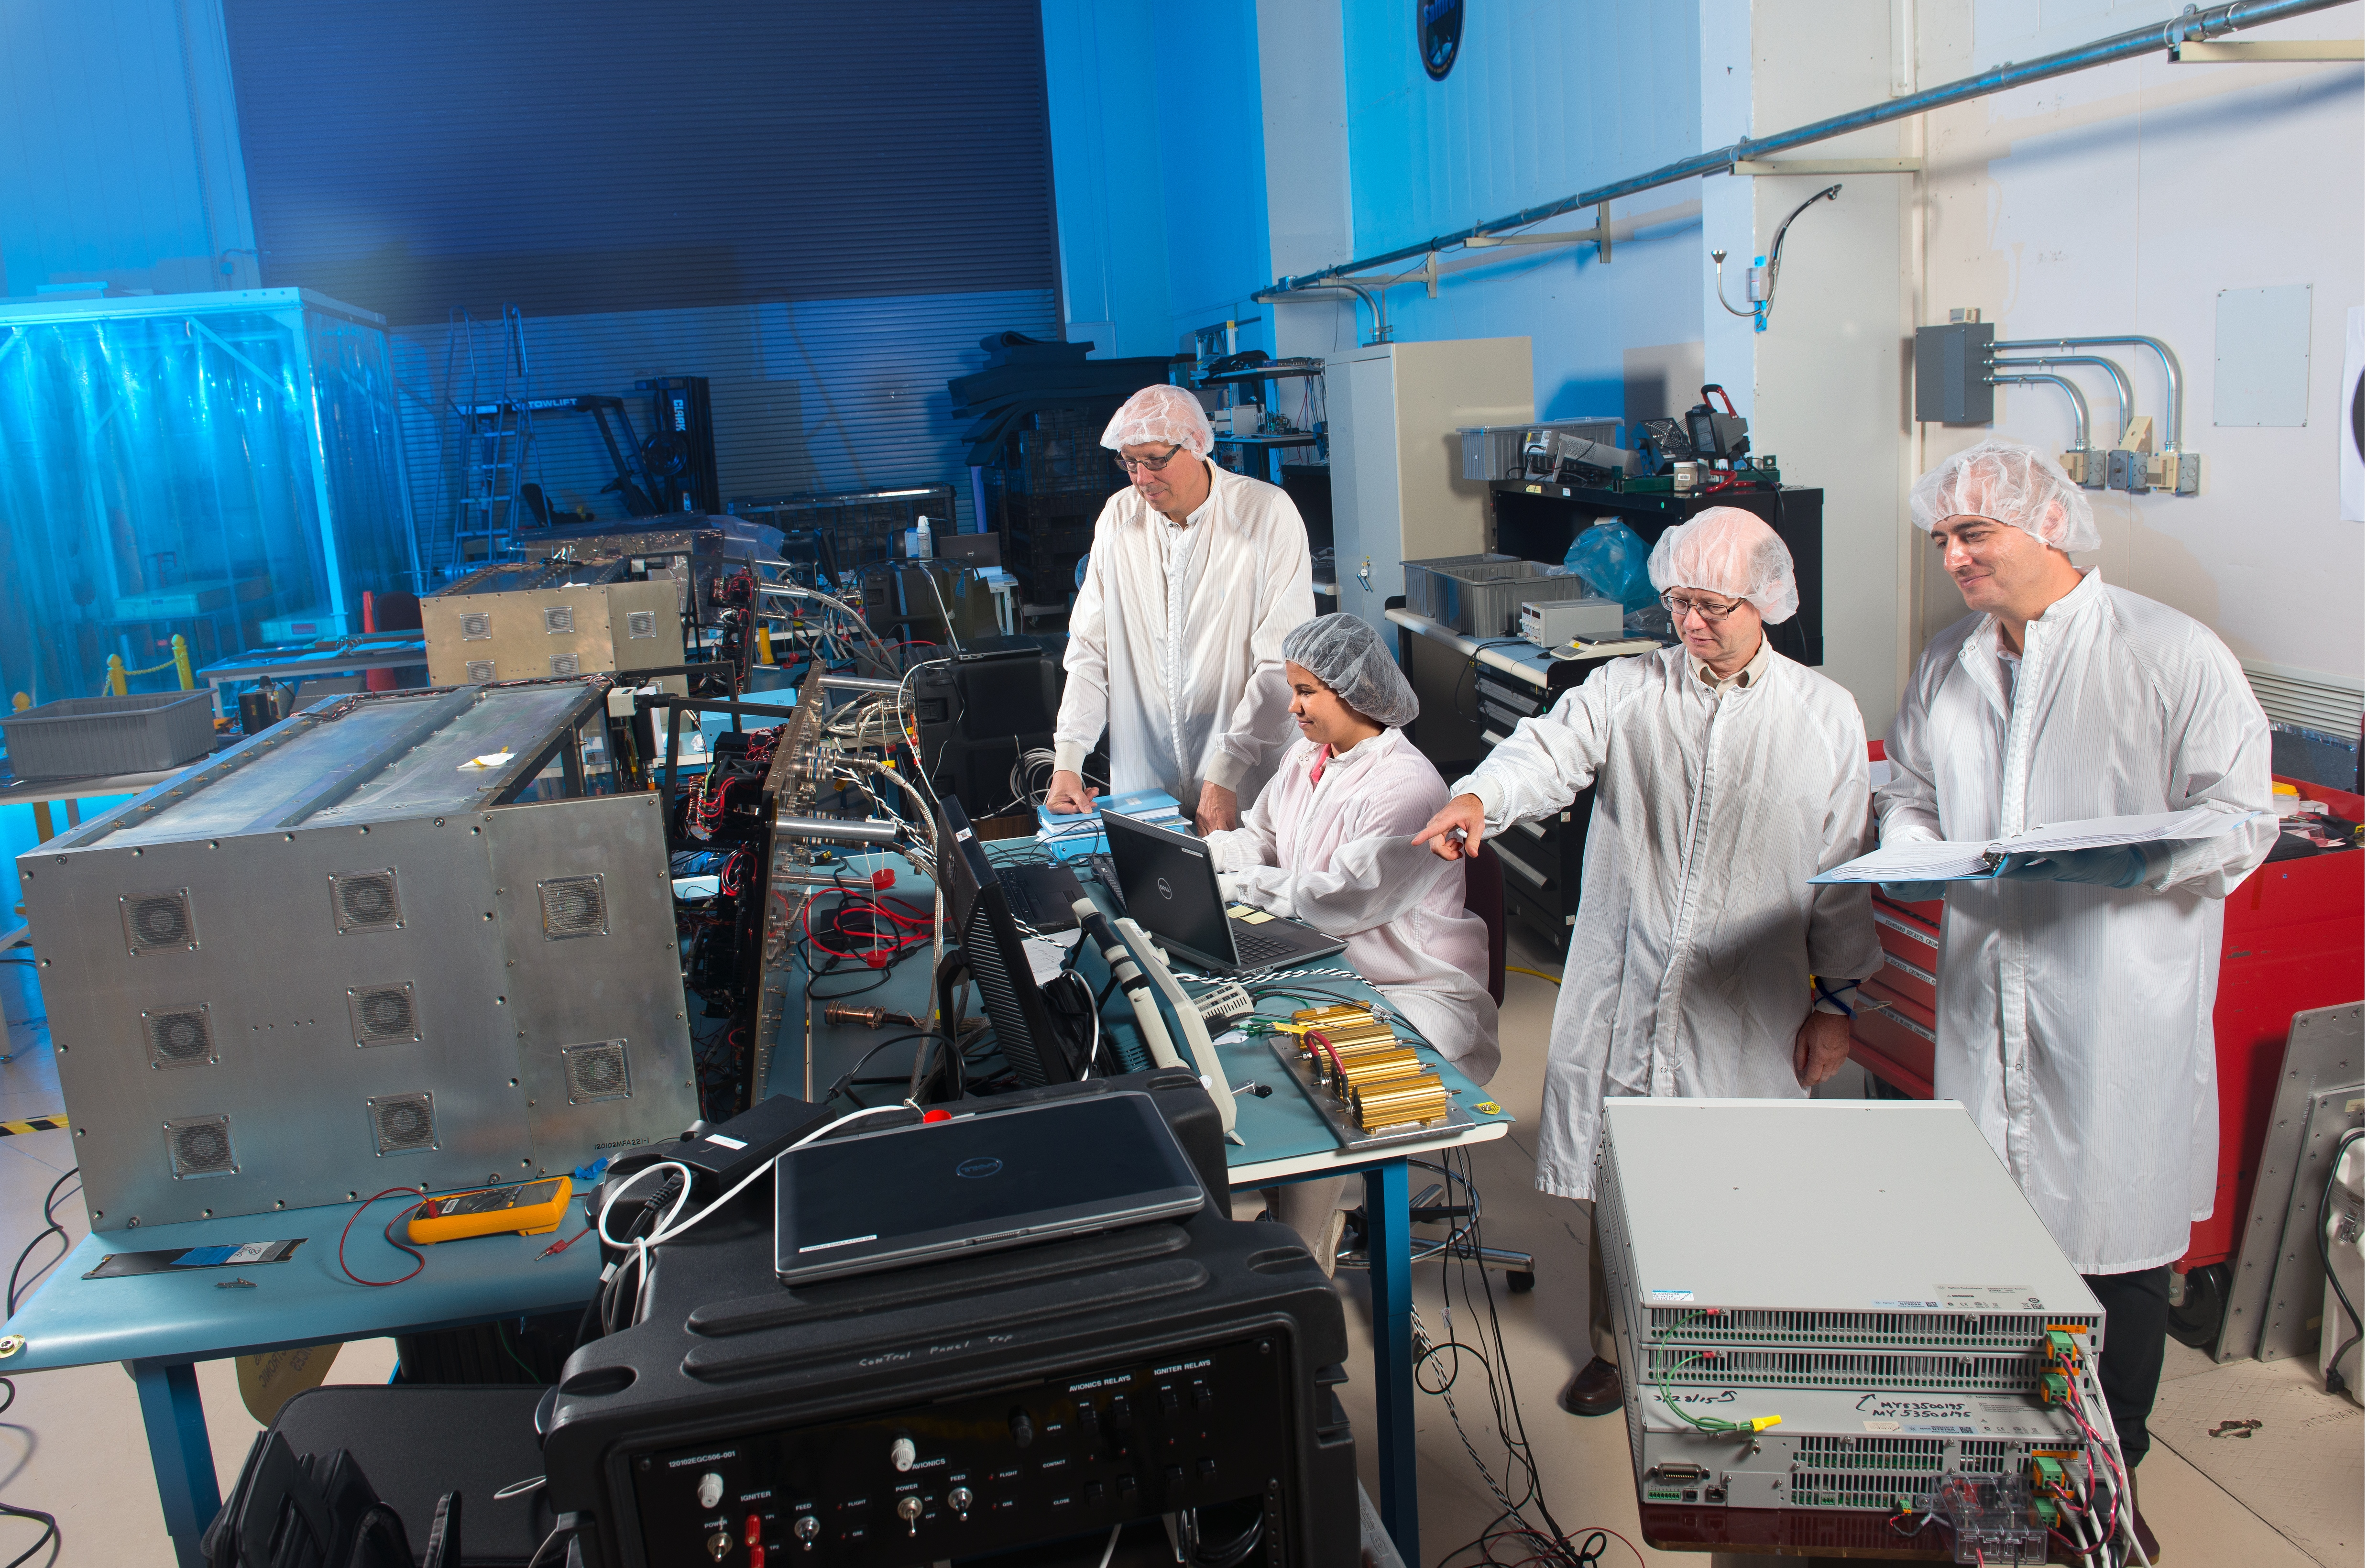 Saffire Experiment to Test Fire in Space